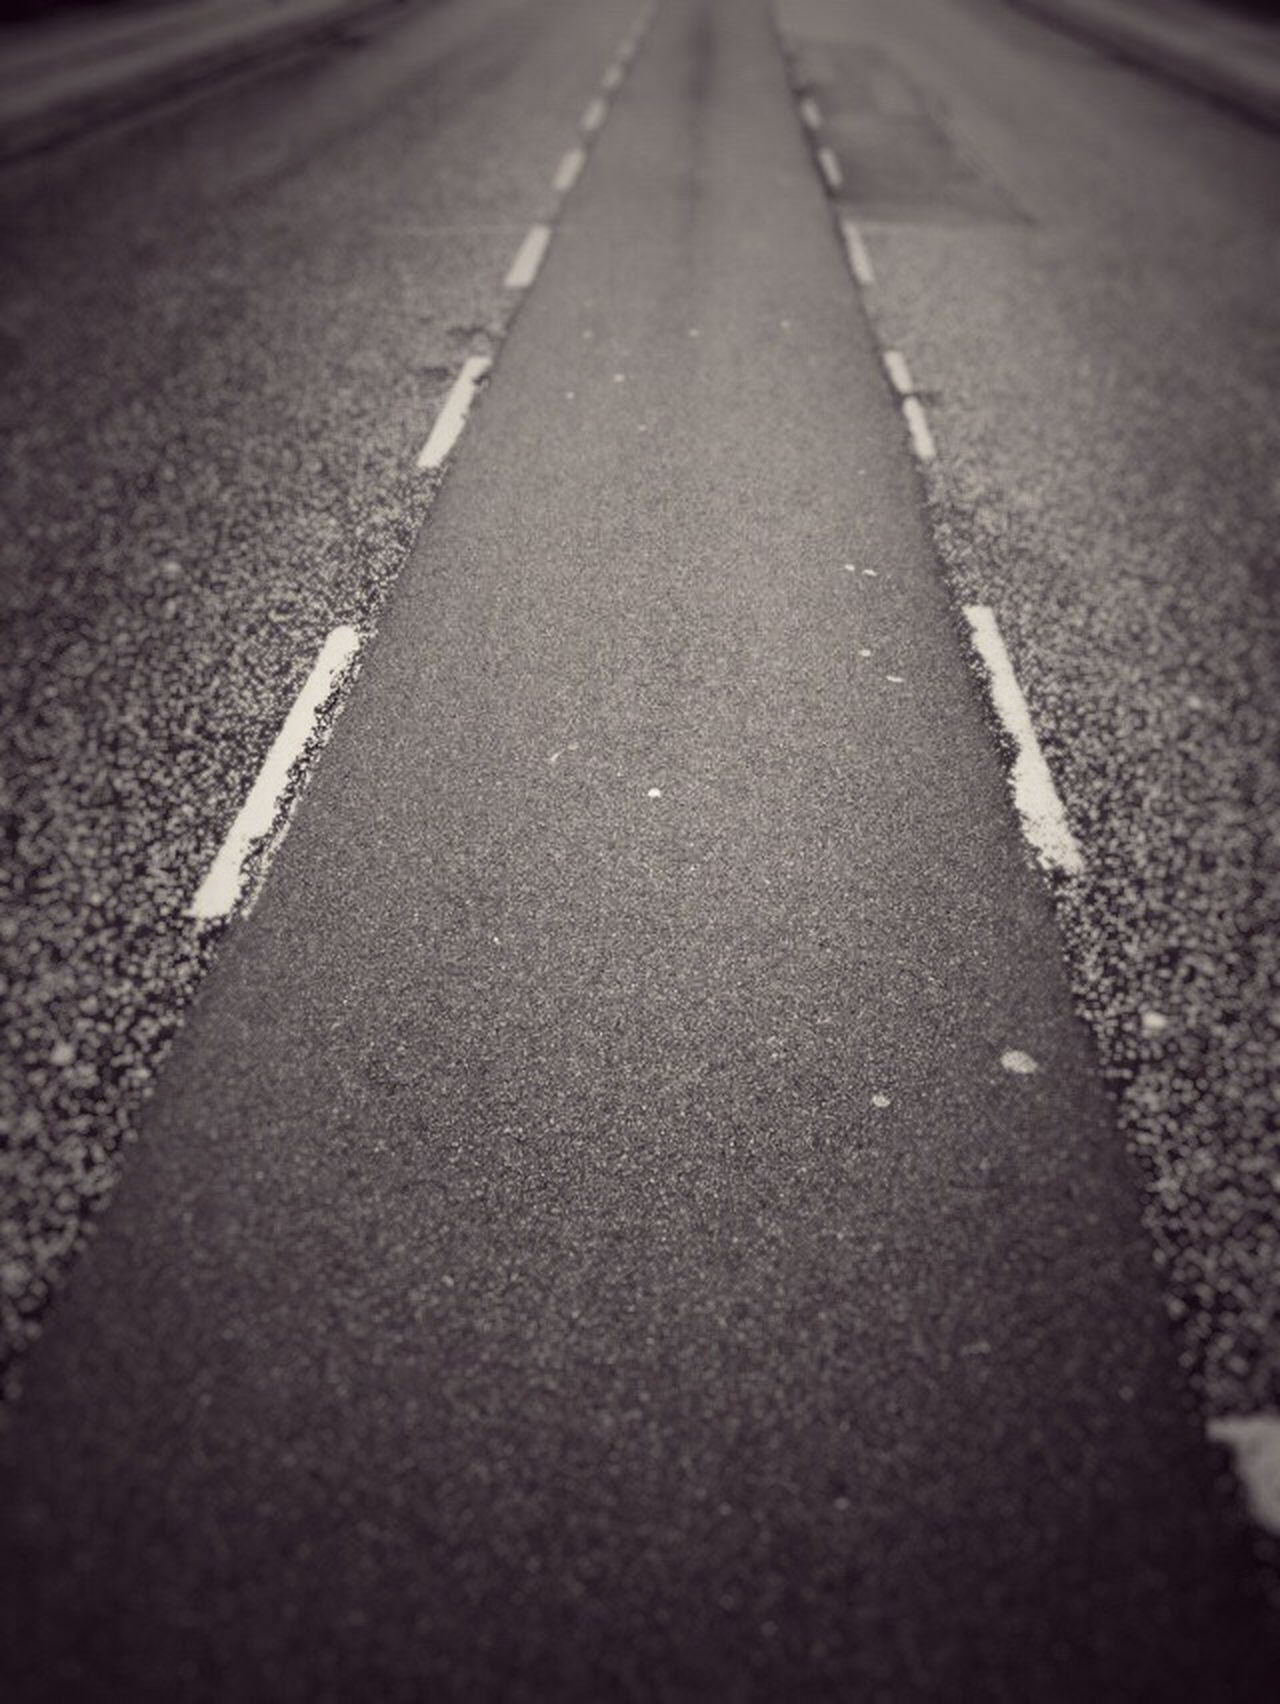 On the road to adventure. Road Roadtrip Drive Lines Asphalt The Road Less Traveled Road Not Taken Adventure Adventures Adventuretime Which Way To Go? Travel Travelling Travel Time!!! Travellers Traveller Journey On The Road Again In Motion On The Way Trip